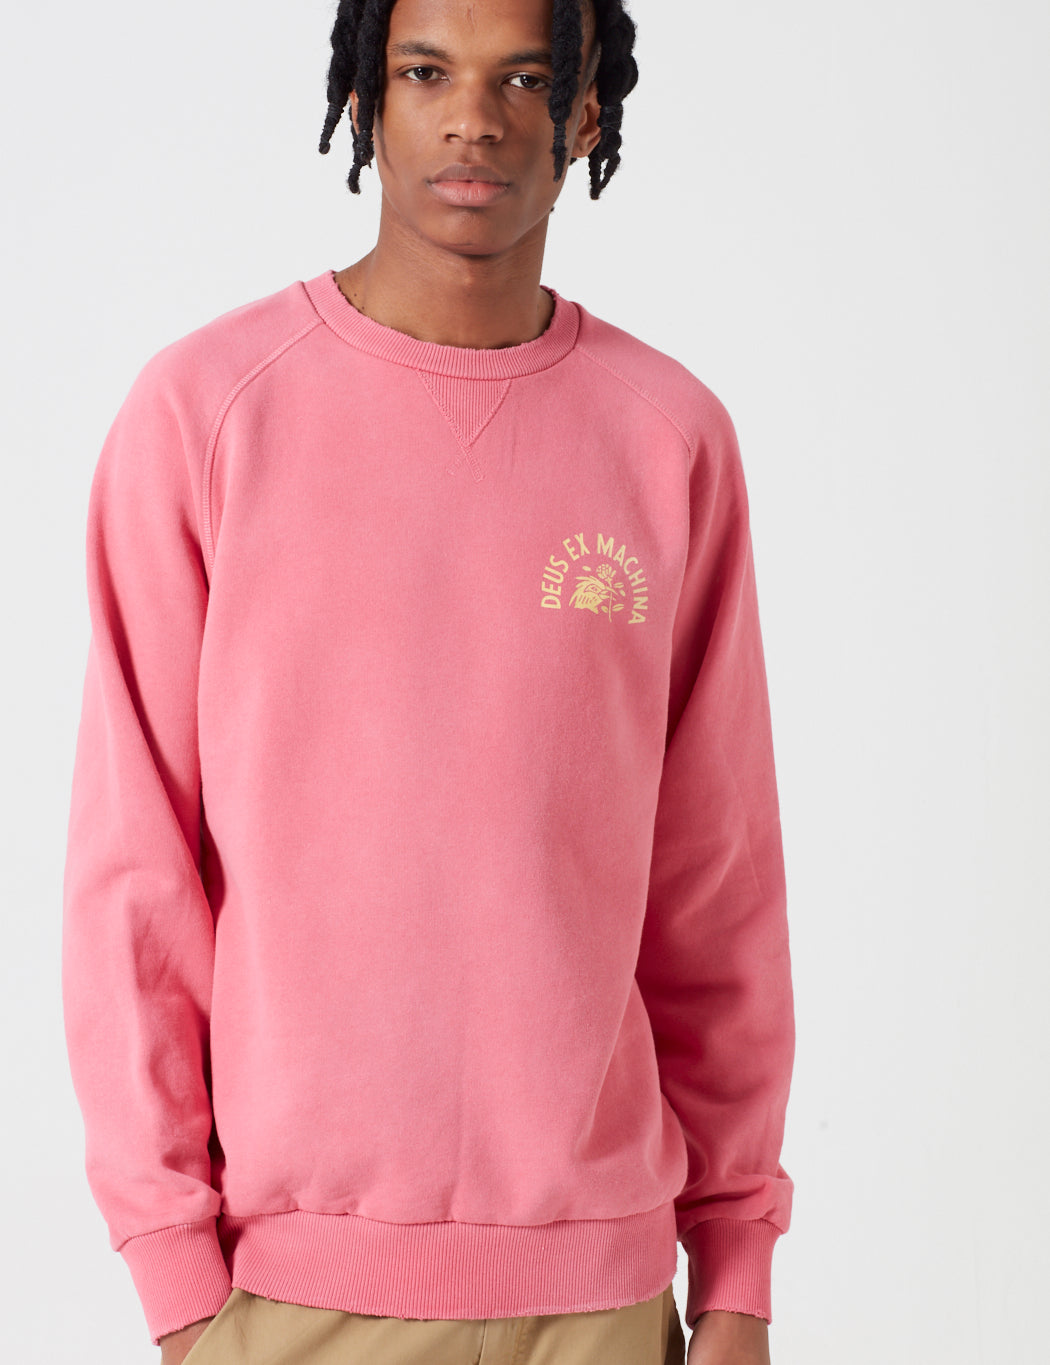 Deus Ex Machina Enthusiasm Crewneck Sweatshirt - Rose Red/Yellow